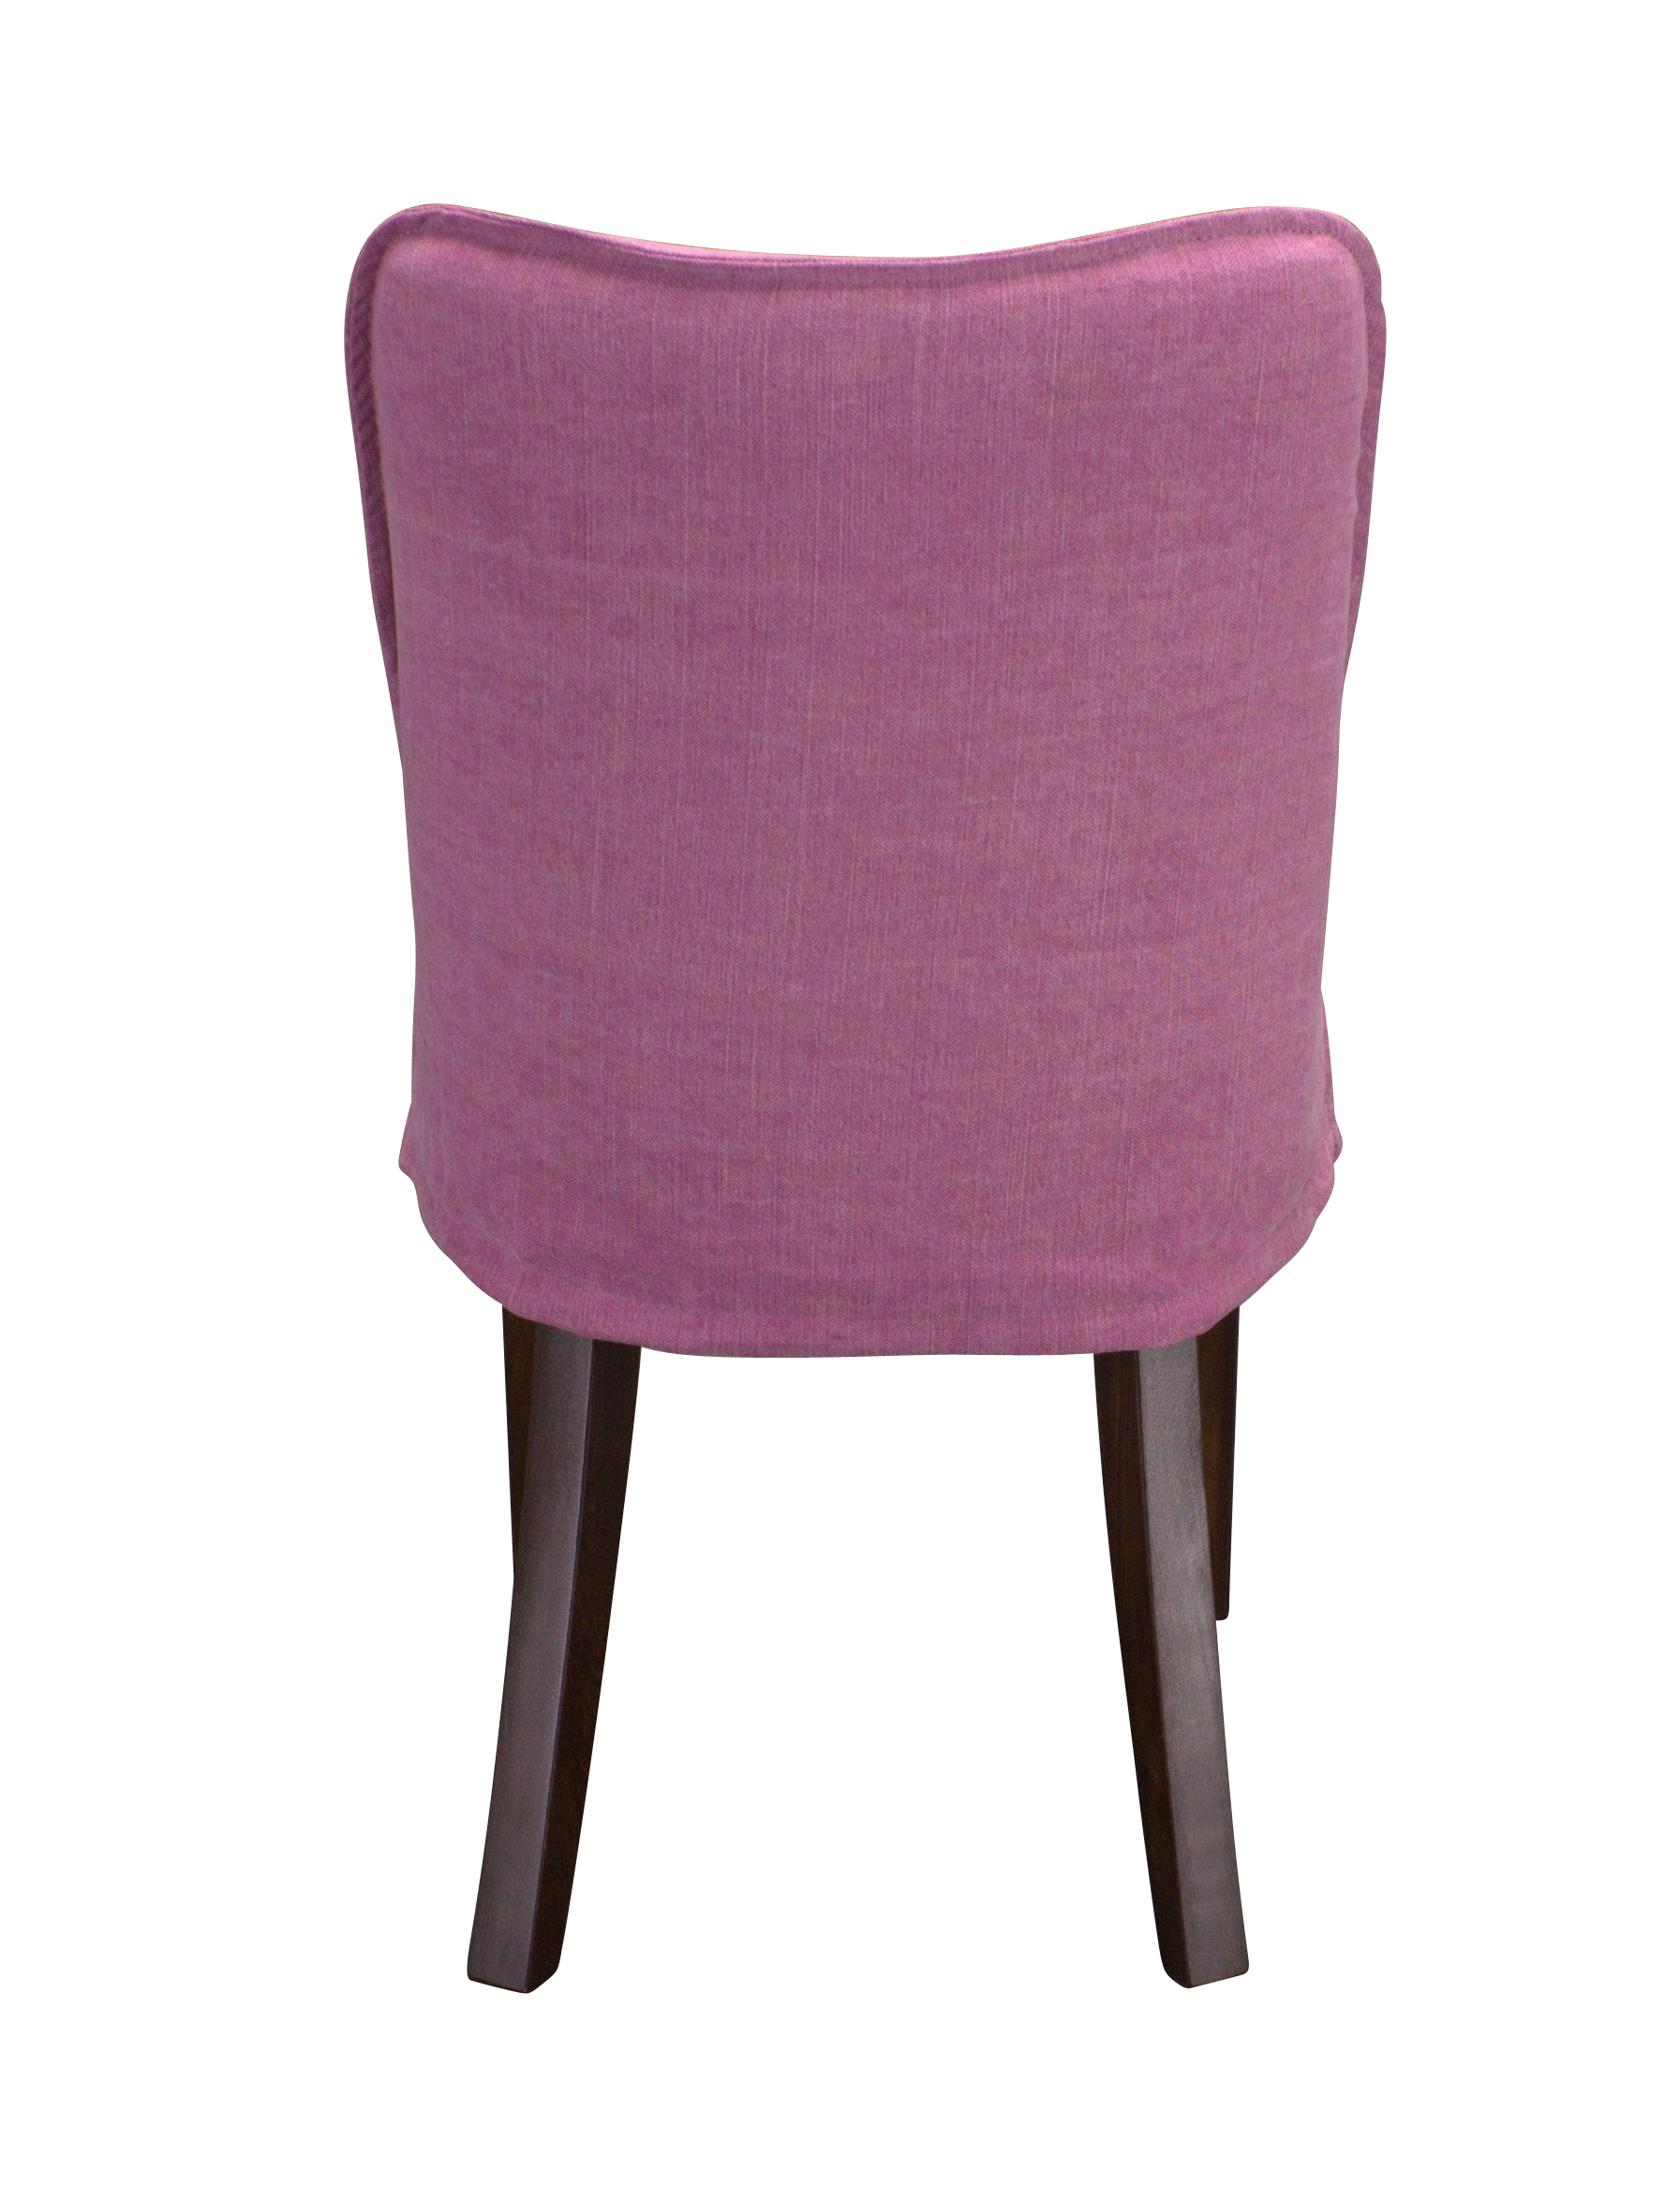 diningchair vincent loose cover